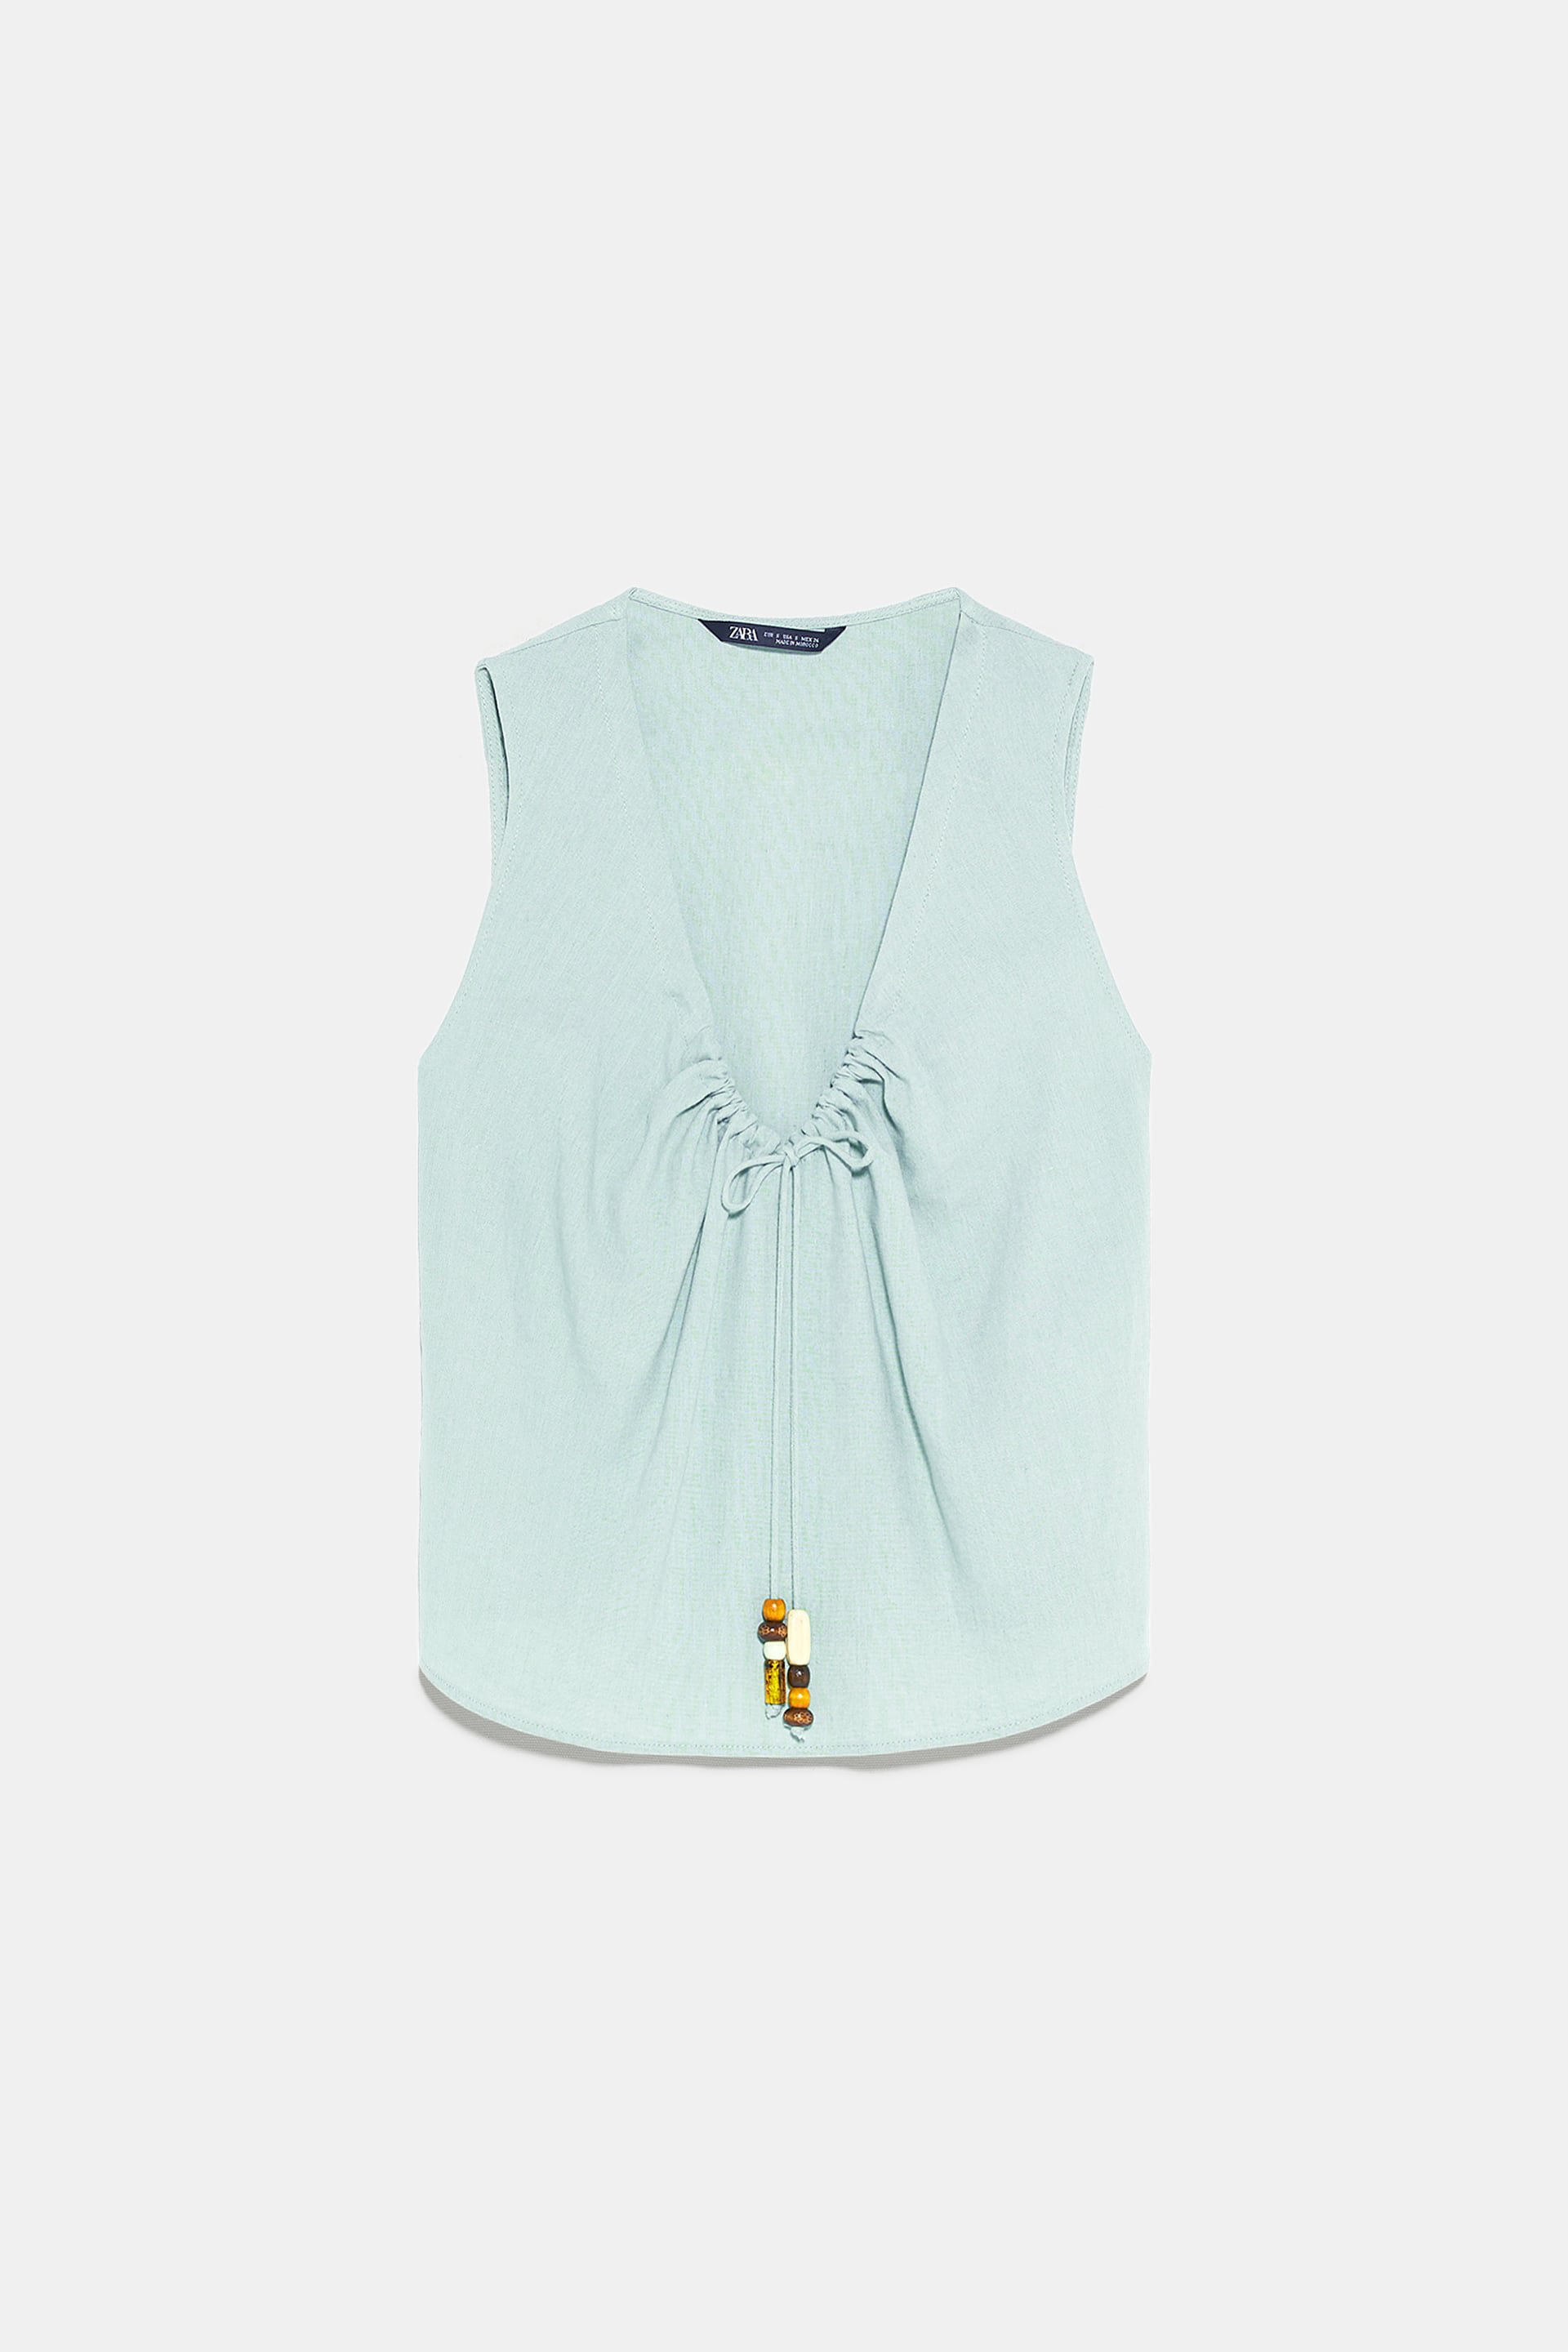 BEADED TIE BLOUSE - View All-SHIRTS | BLOUSES-WOMAN | ZARA United States